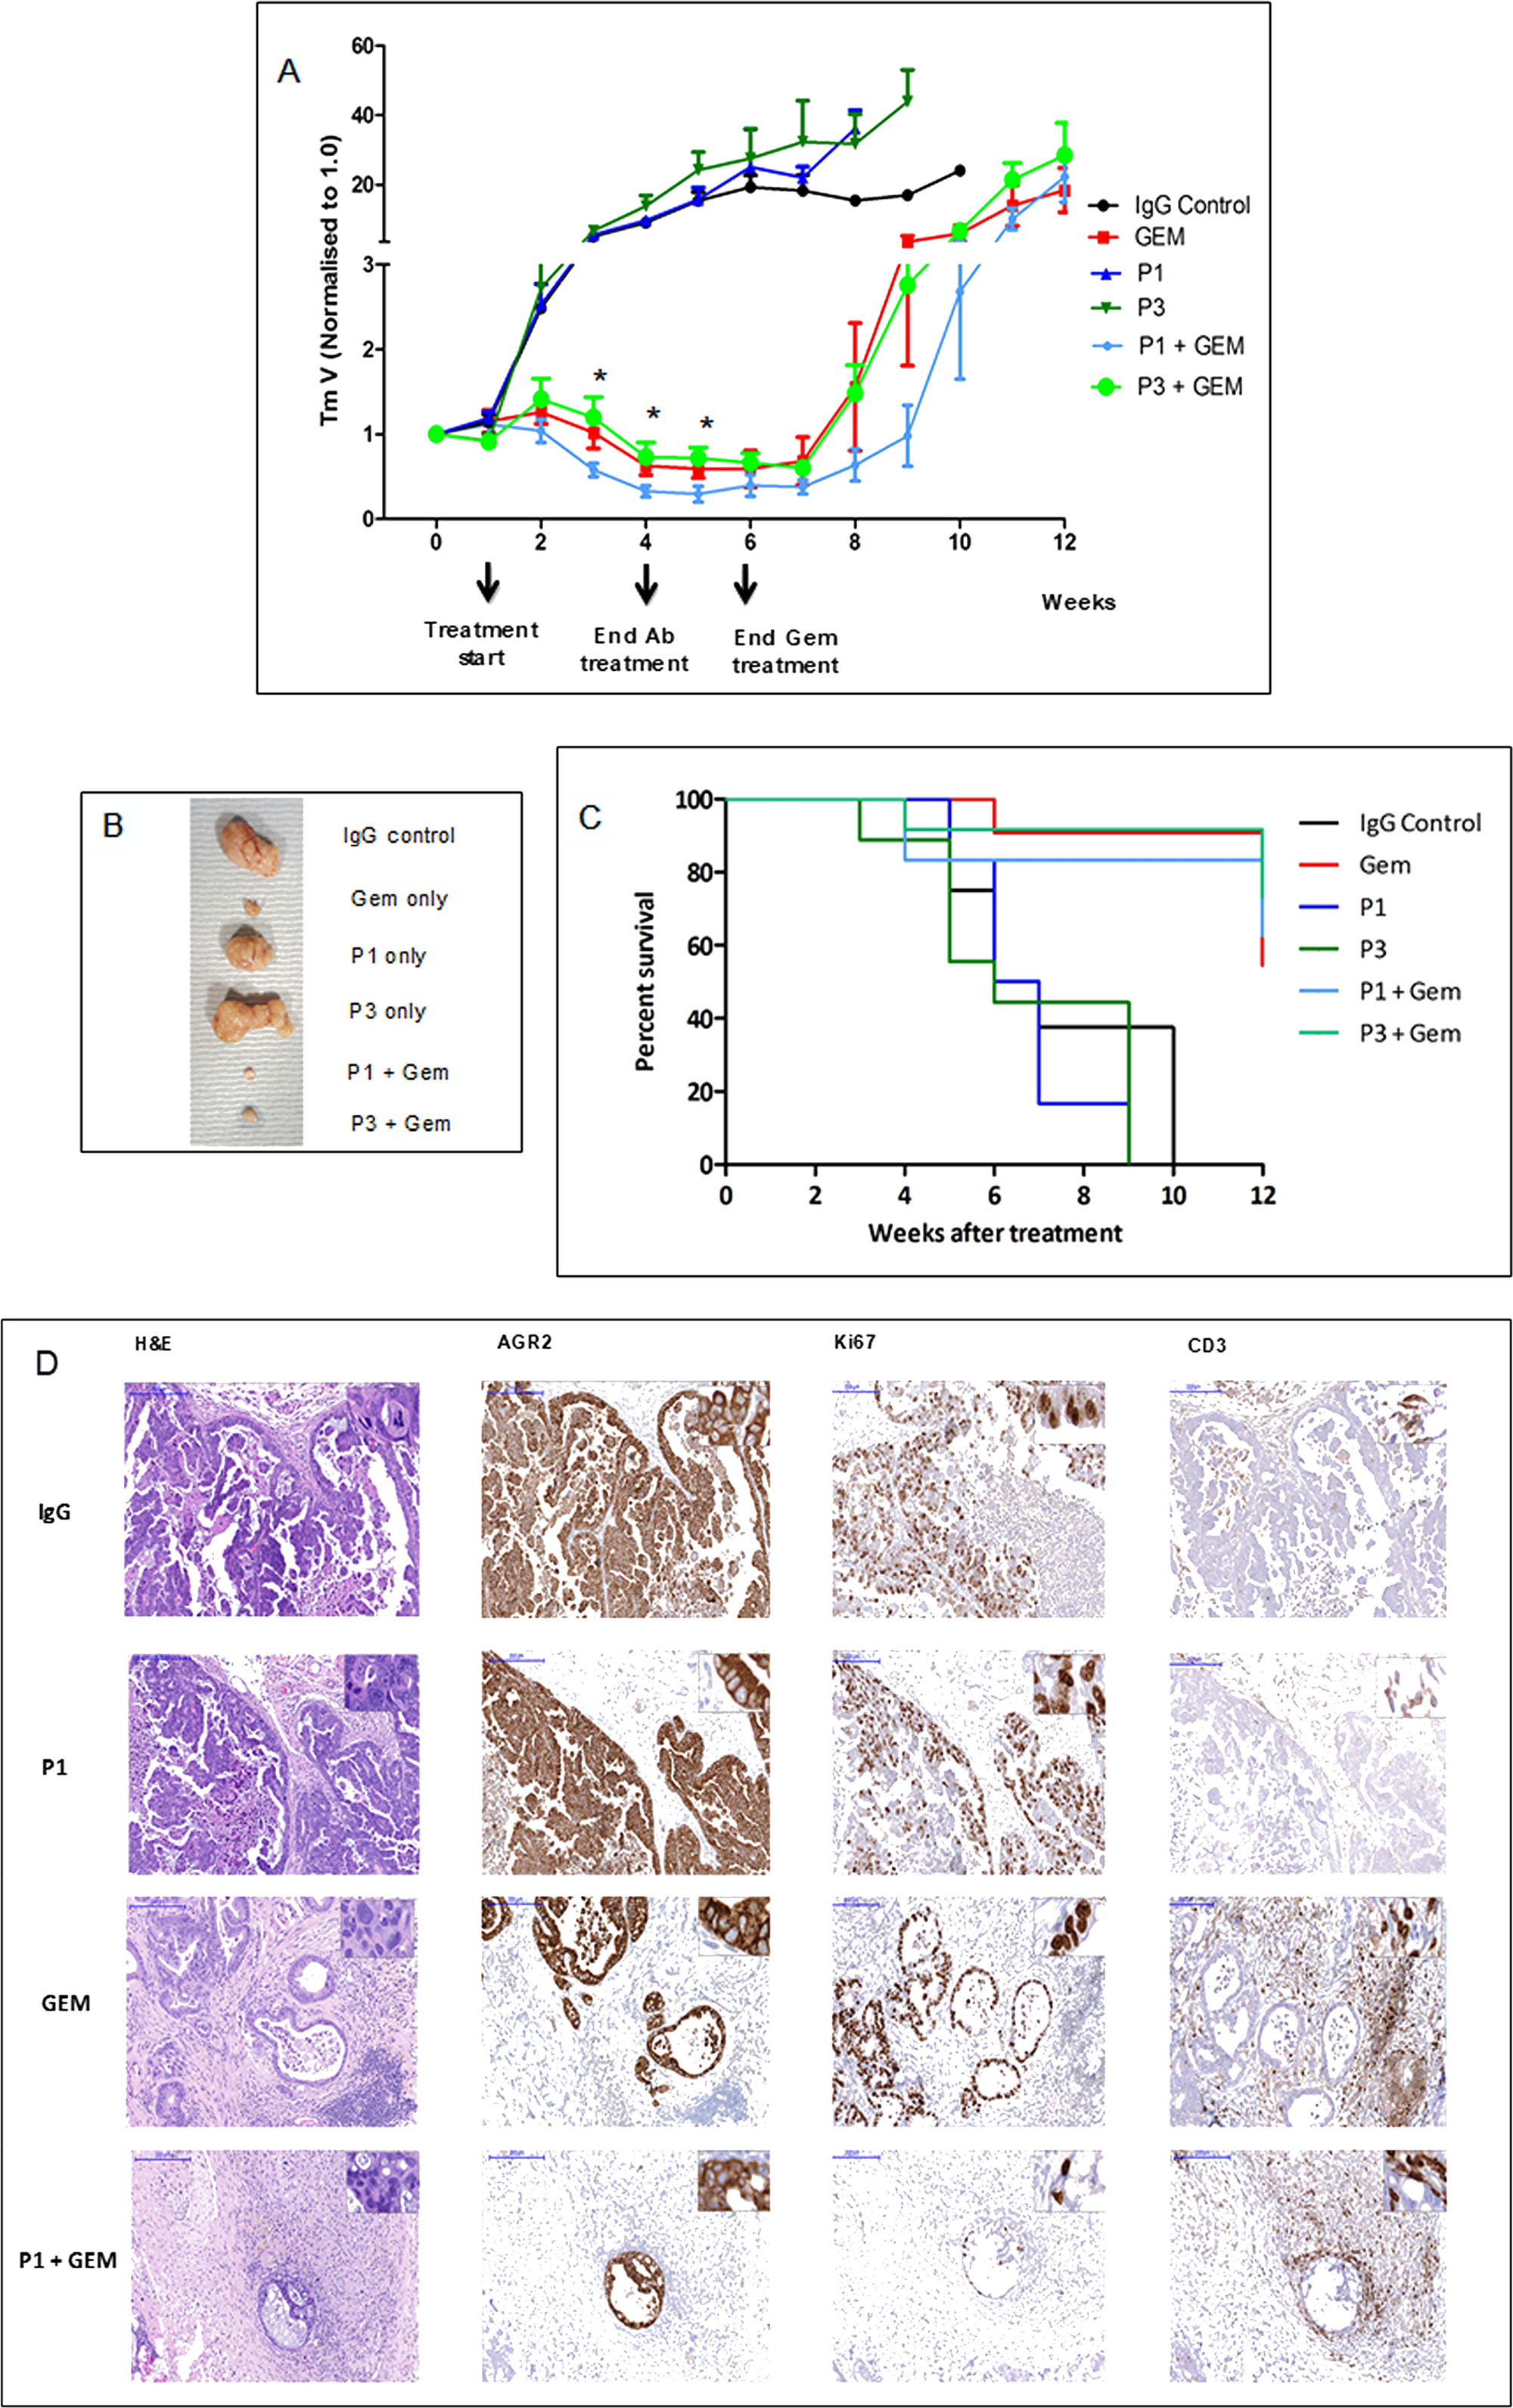 Tumor growth inhibition by drug in combination with antibodies.